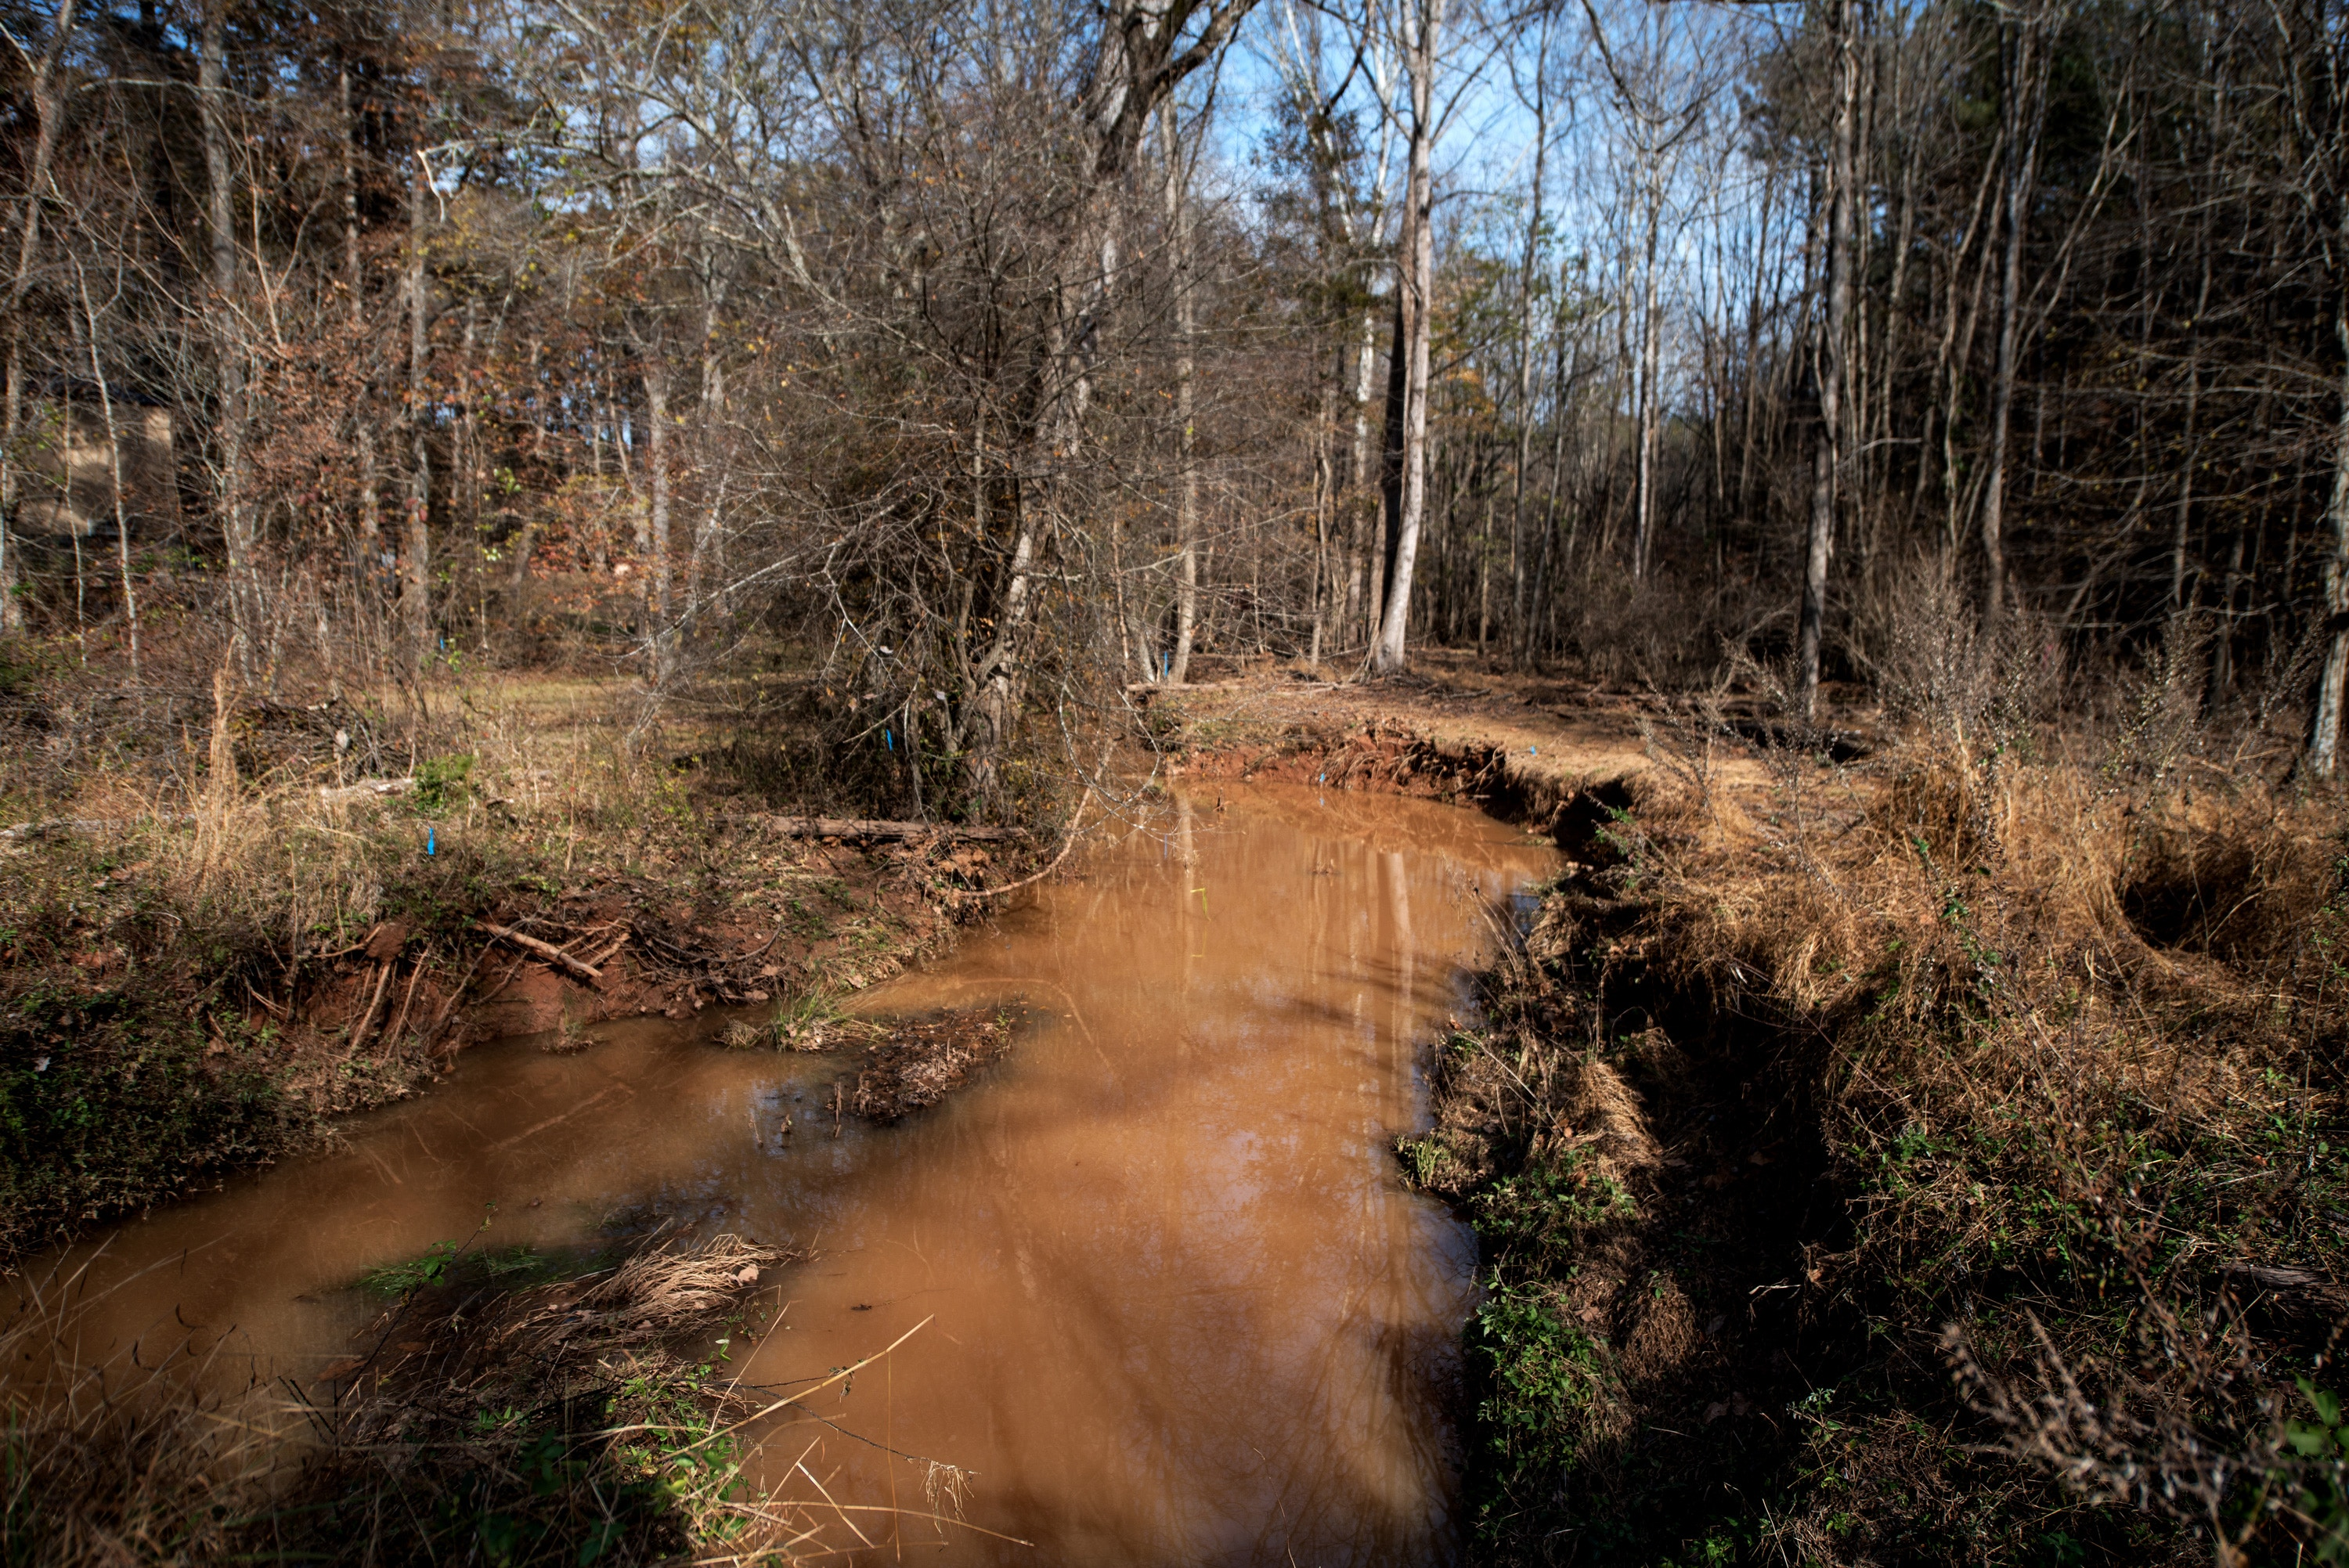 A construction site in Durham county where the development of houses will be, is causing a construction overflow that is causing pollutants to leak into Lick Creek.